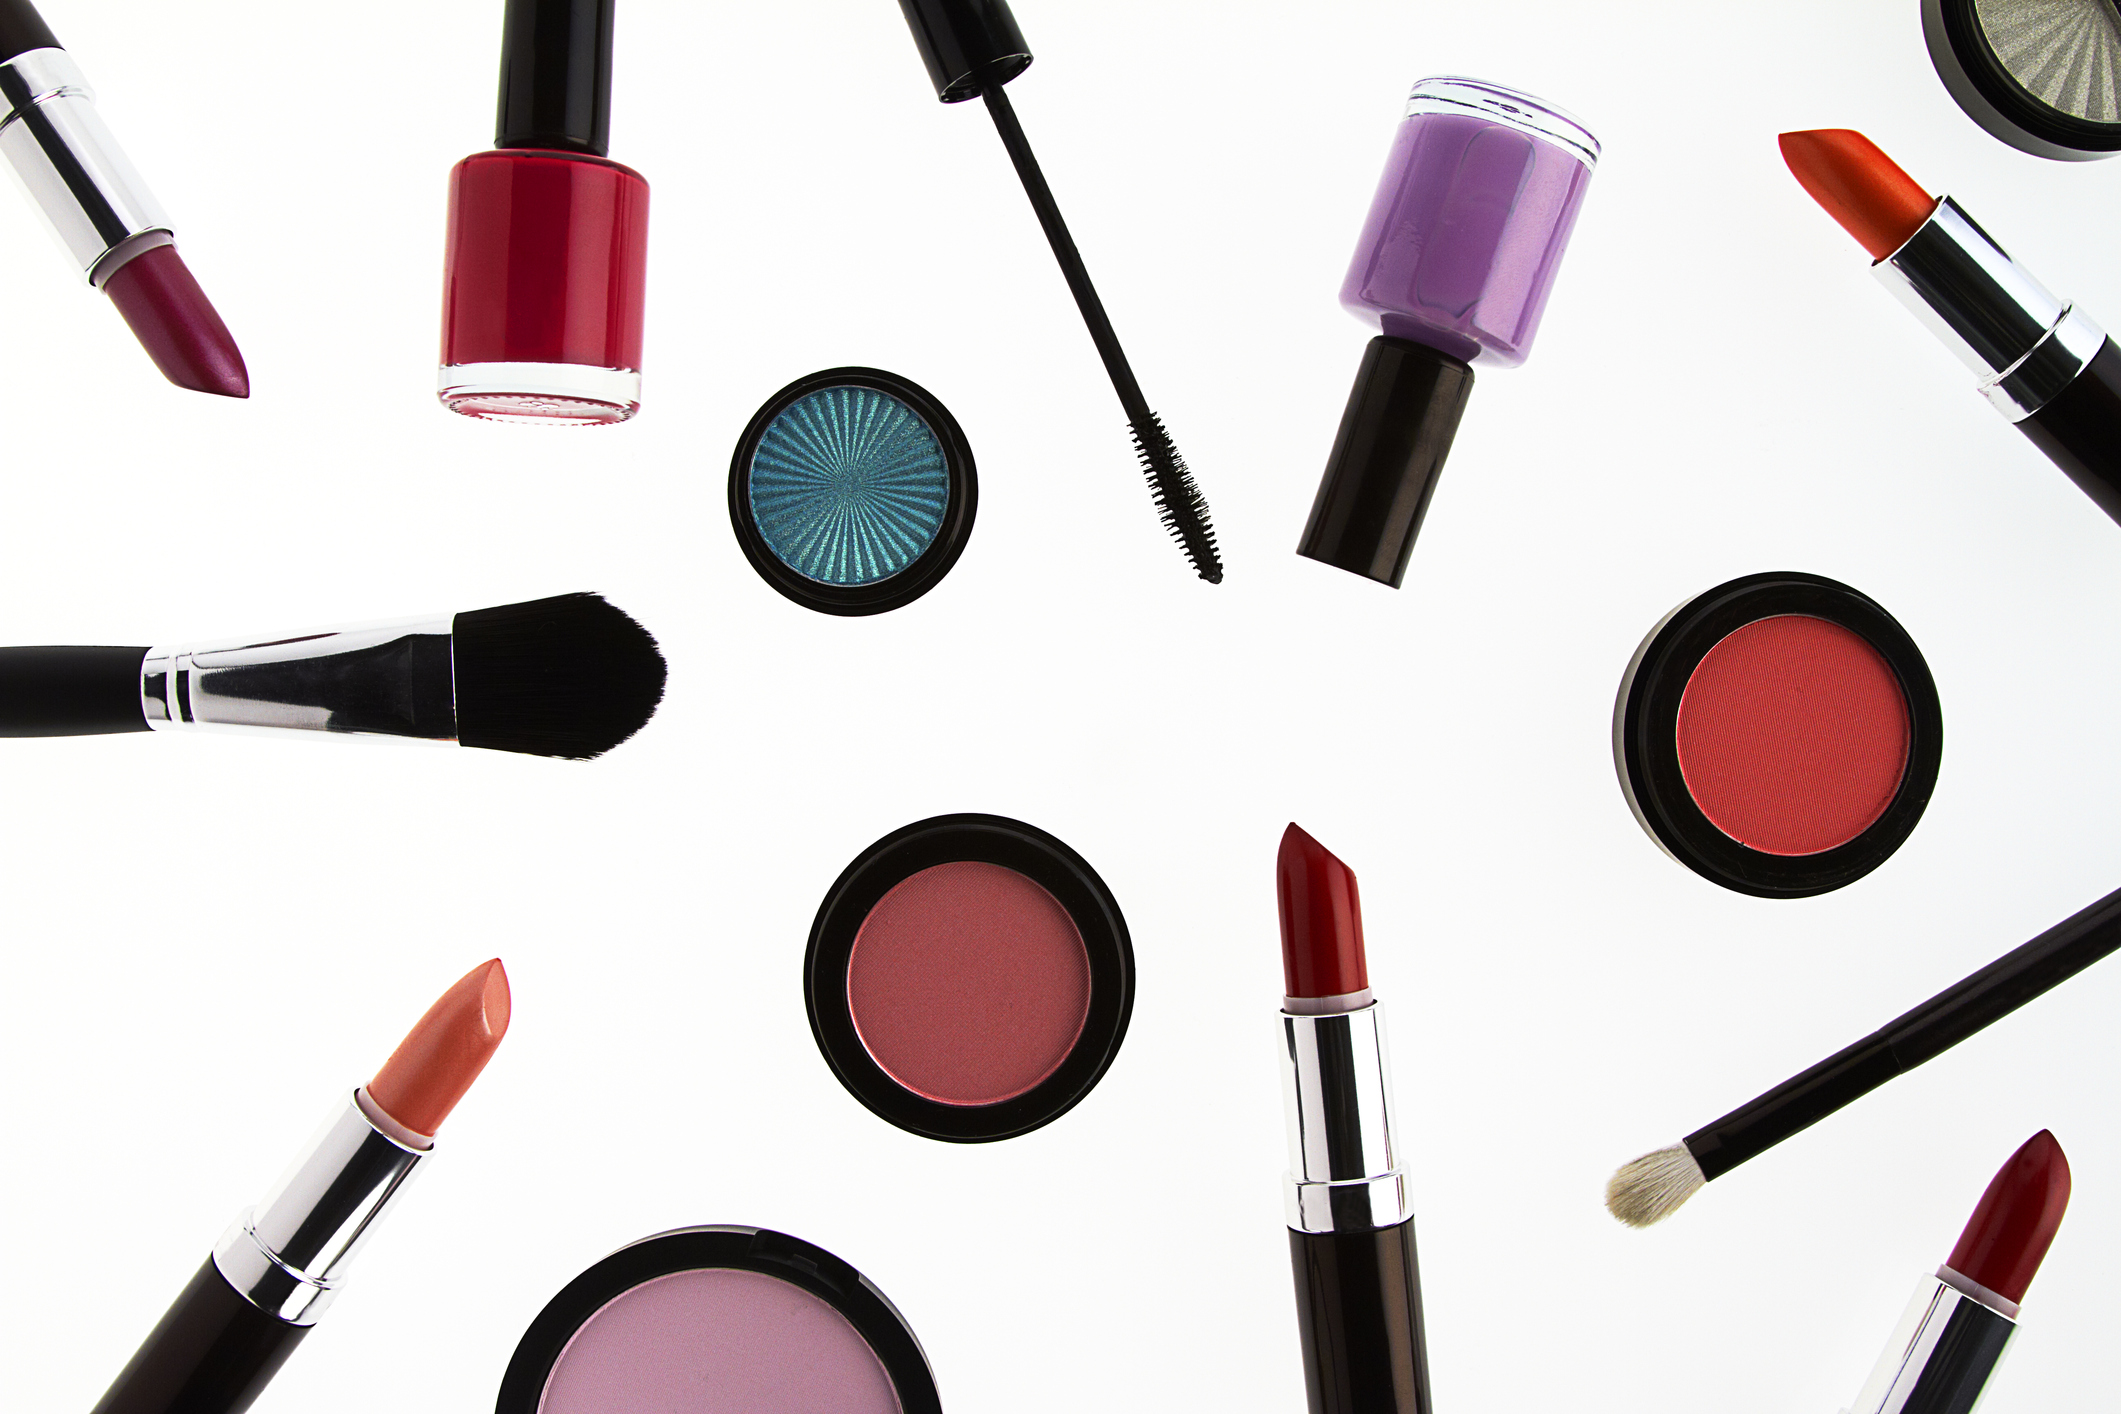 Here are the places where you can get free makeup samples